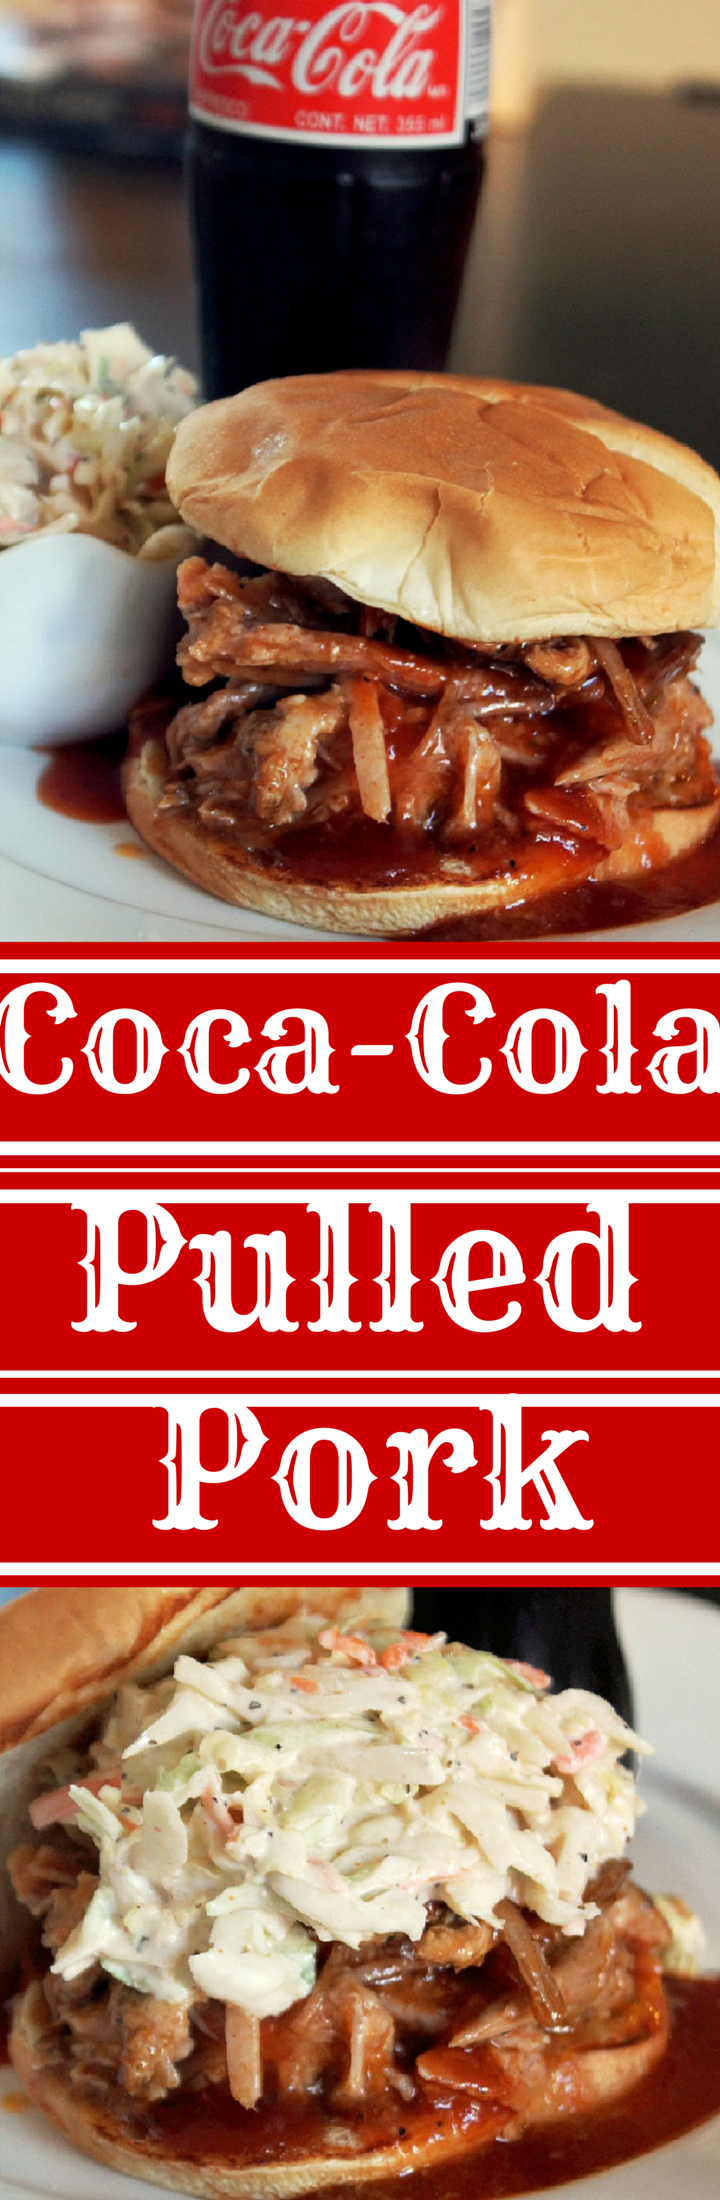 Pull pork recipe with coke